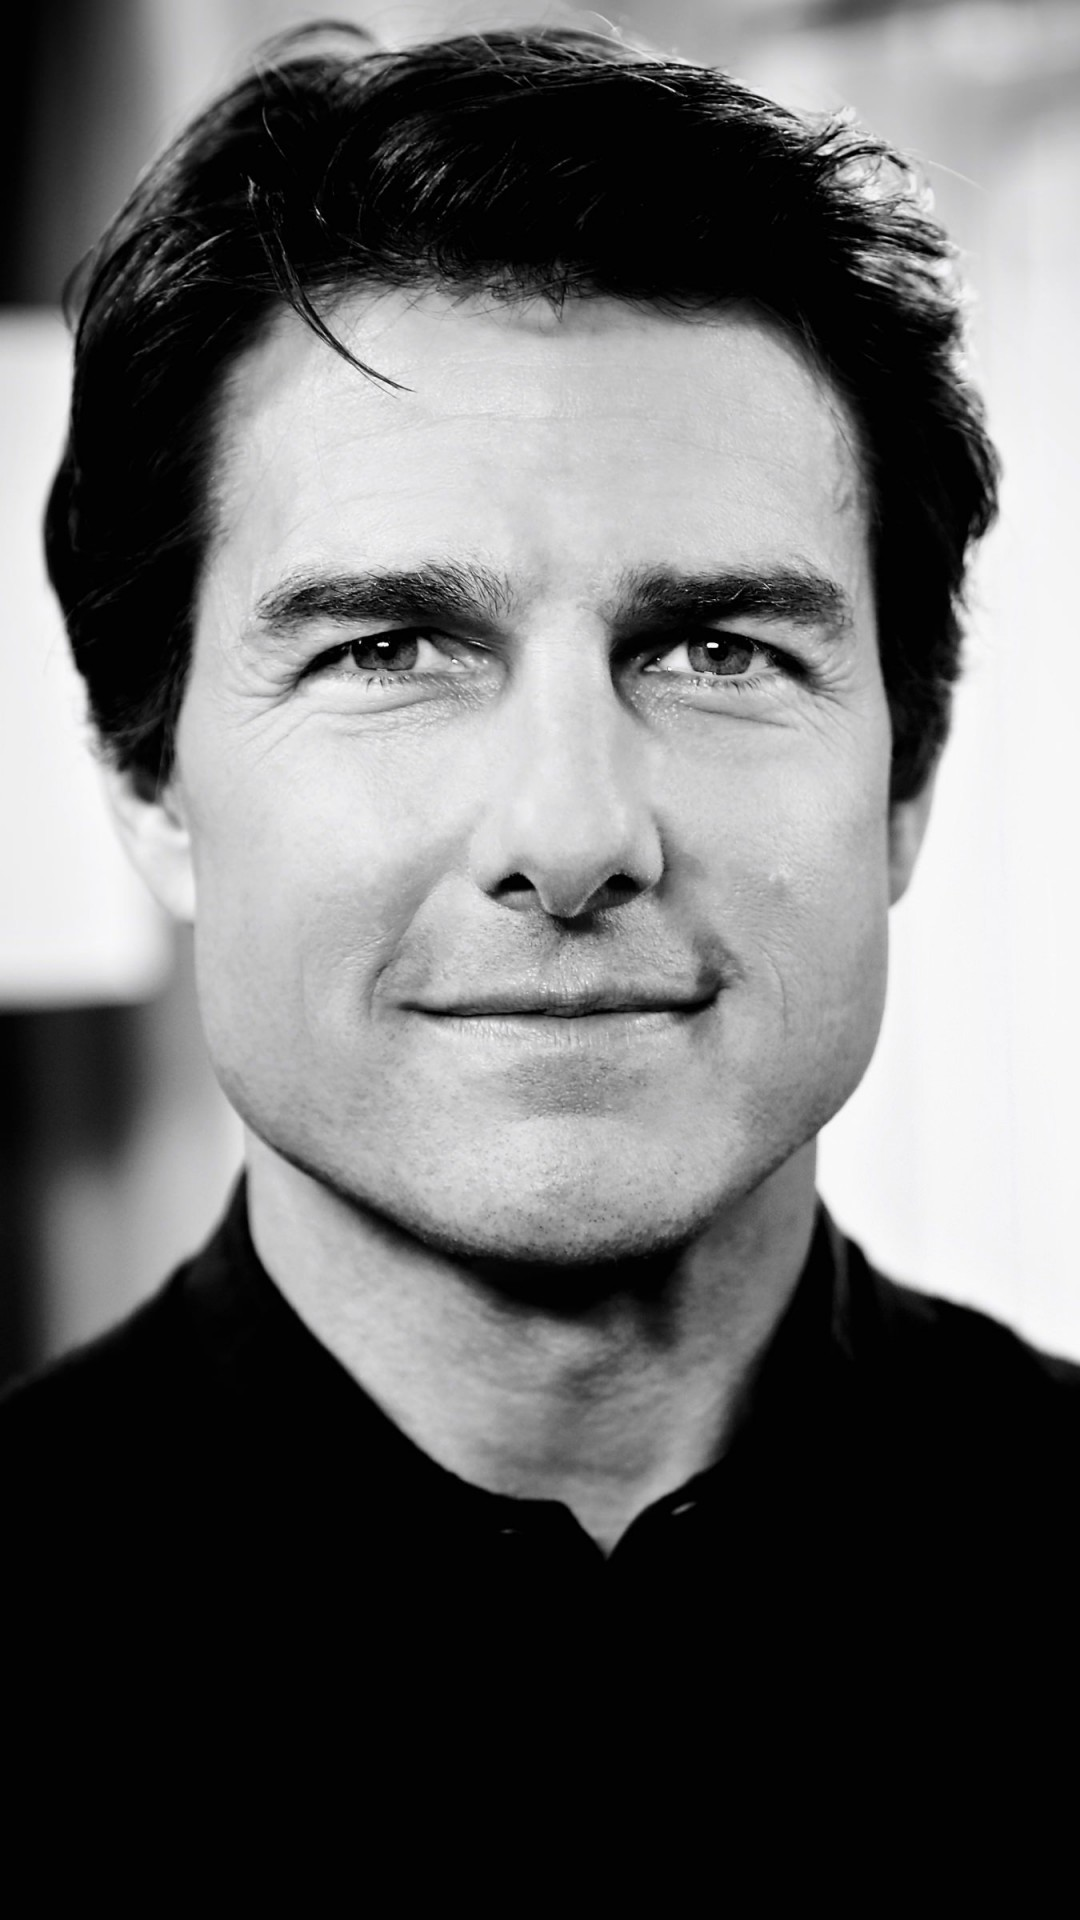 Tom Cruise Black & White Portrait Wallpaper for HTC One